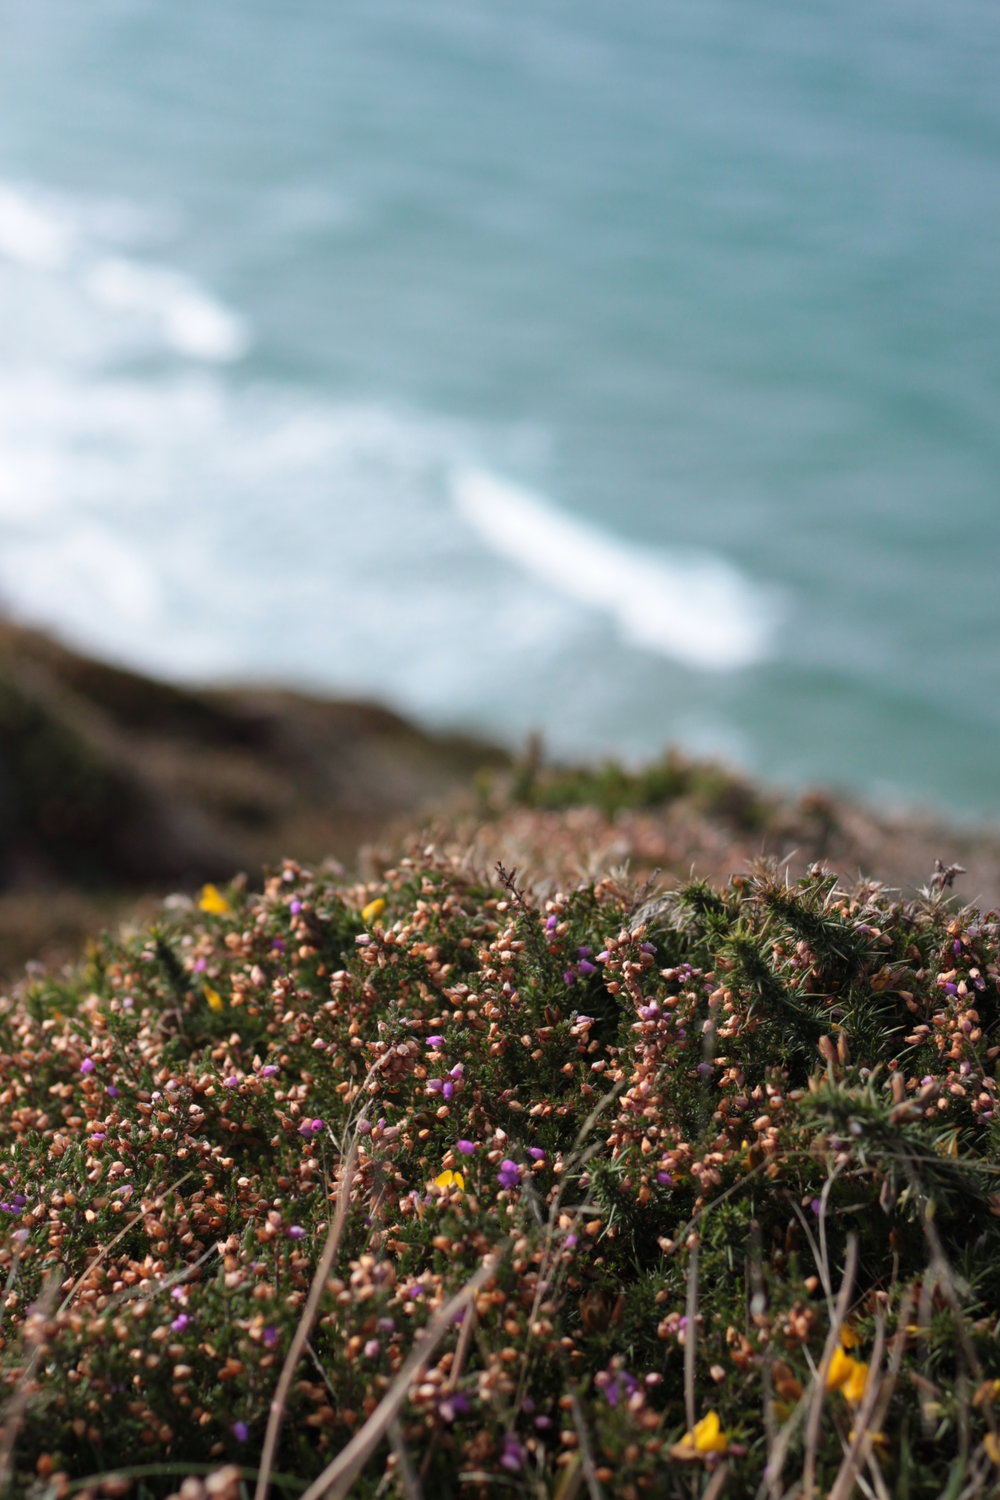 Heather and gorse carpeted the cliff tops. So stunning.